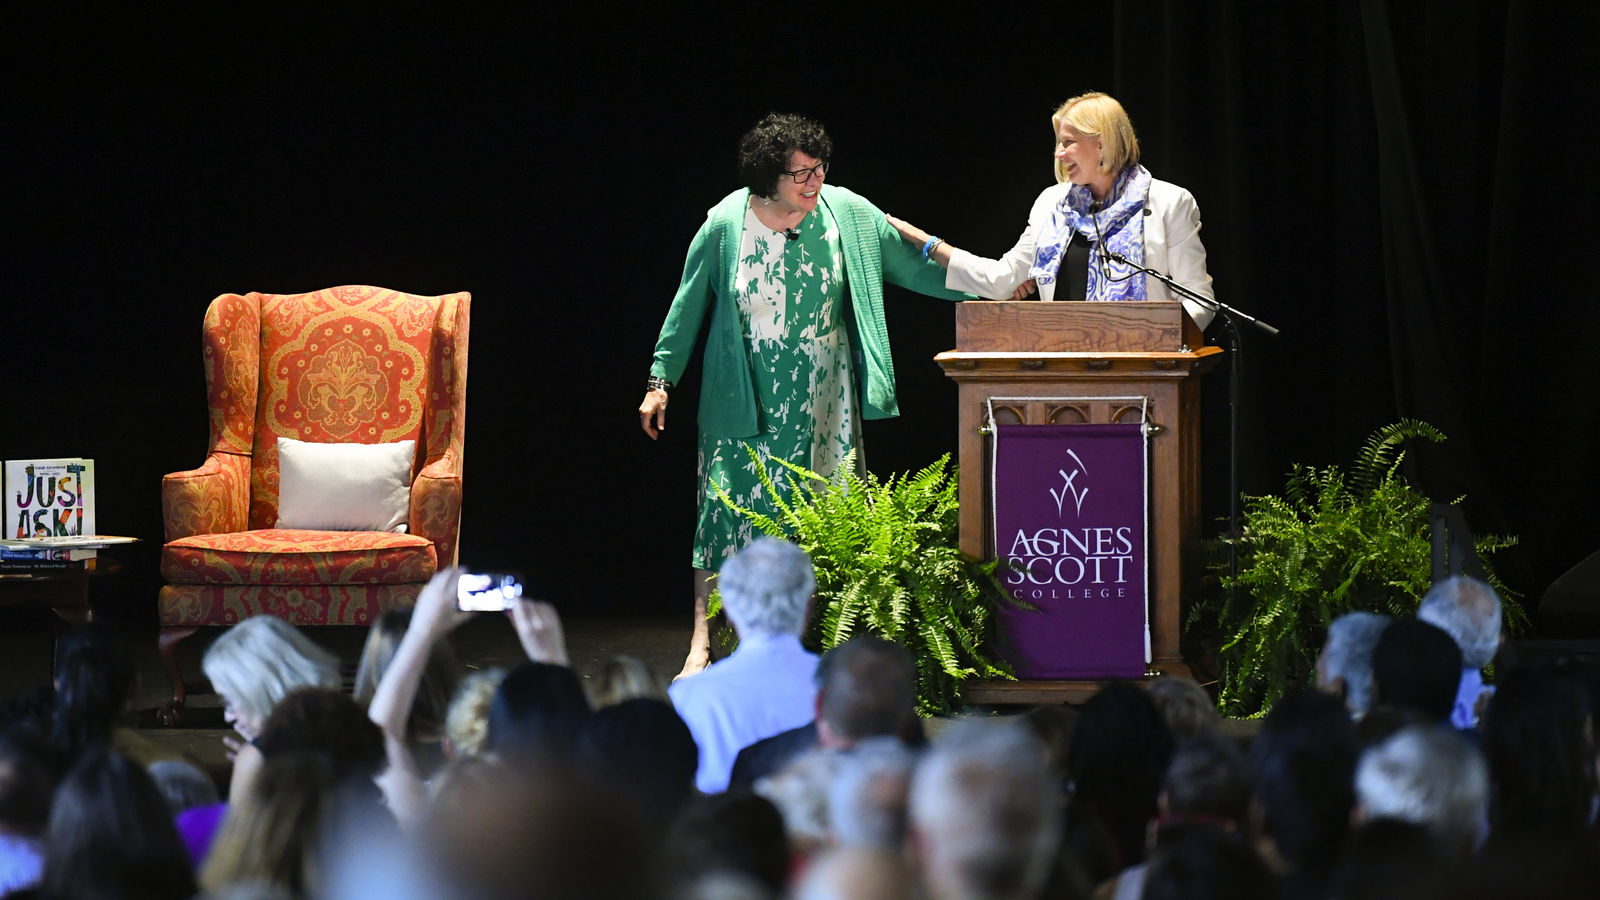 "U.S. Supreme Court Justice Sonia Sotomayor, left, is introduced by Agnes Scott College President Leocadia I. Zak during an event in connection with her new children's book ""Just Ask!"" Sunday, Sept. 1, 2019, in Decatur, Ga. (AP Photo/John Amis)"